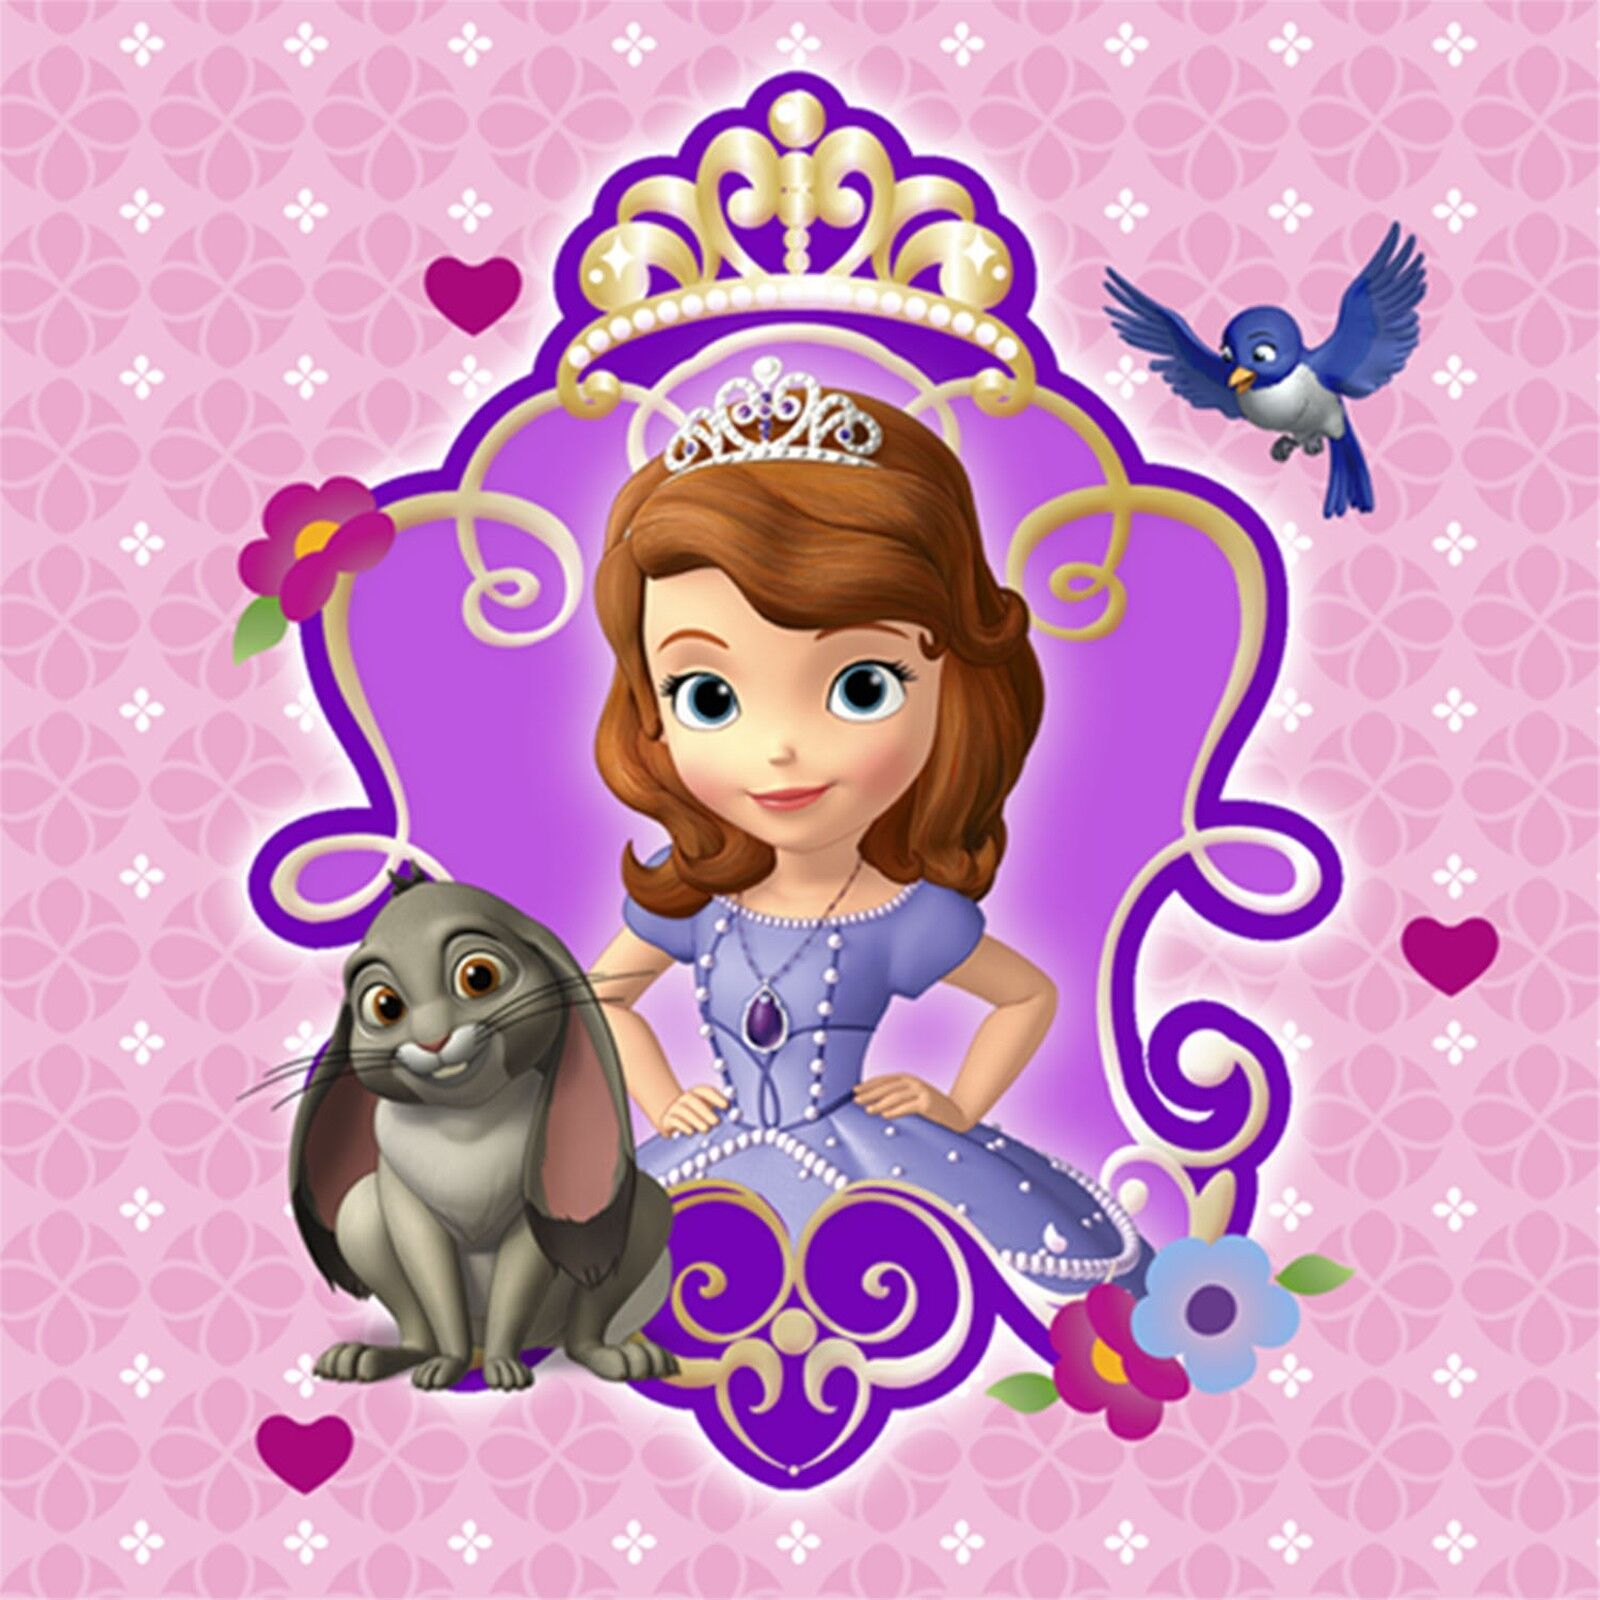 Disney Princess Sofia The First 24 X 36 Poster Pink Background